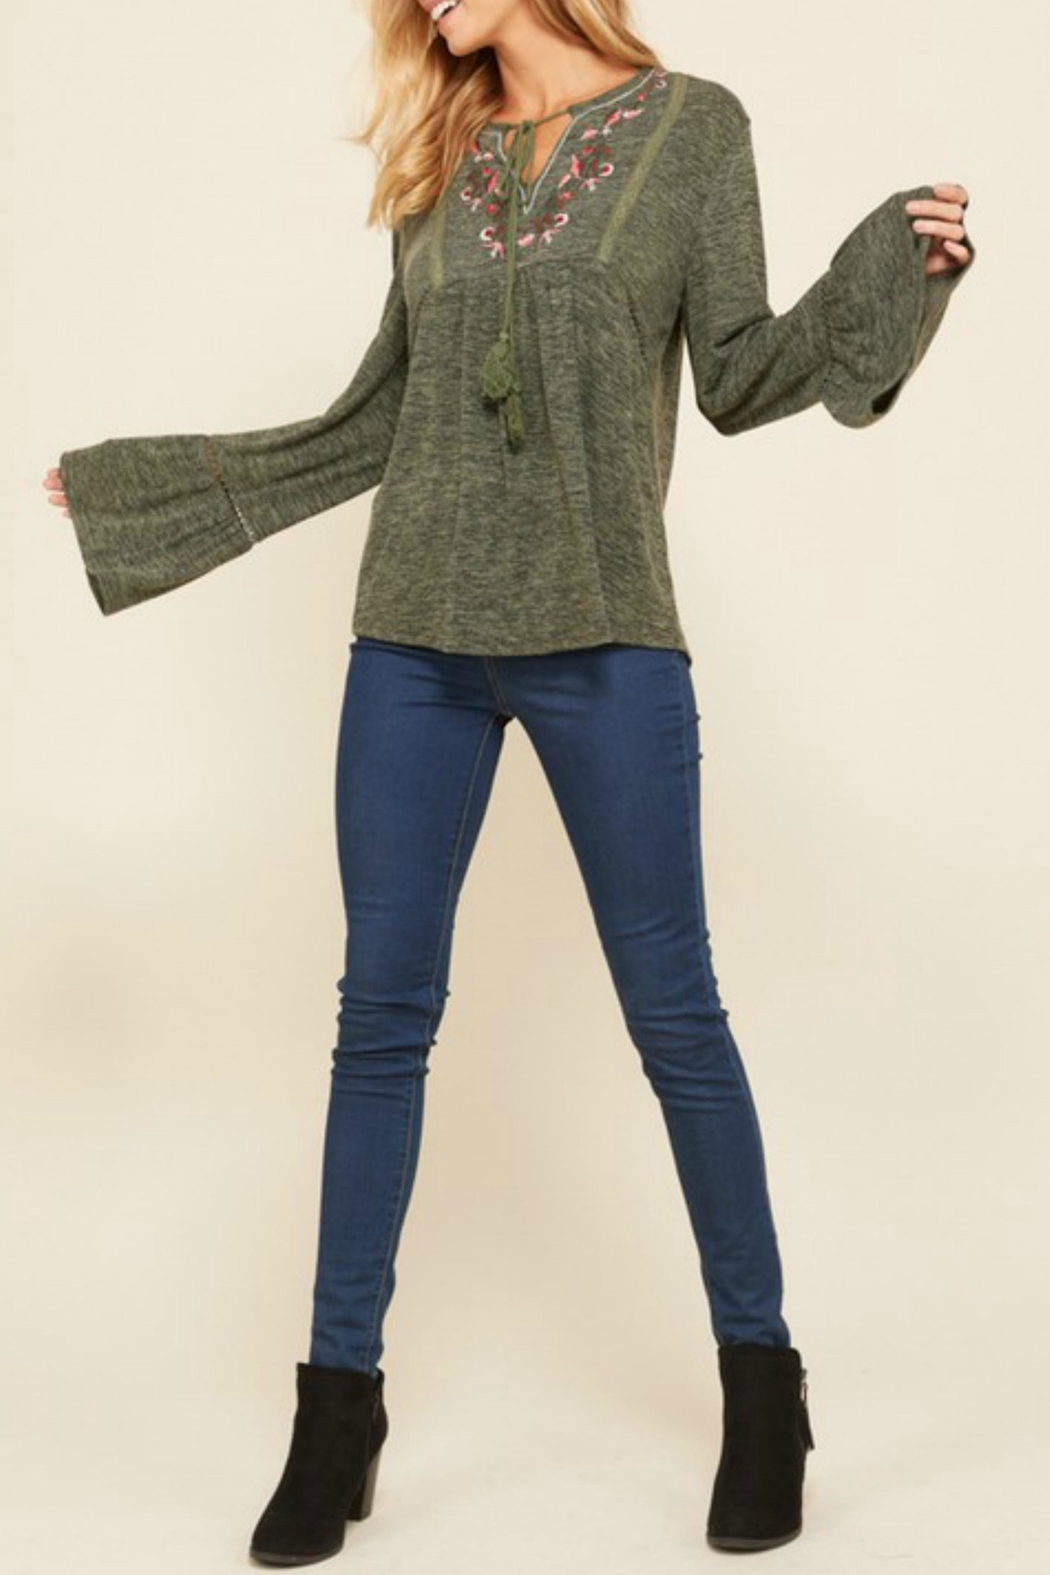 annabelle Embroidered Peasant Sweater - Main Image